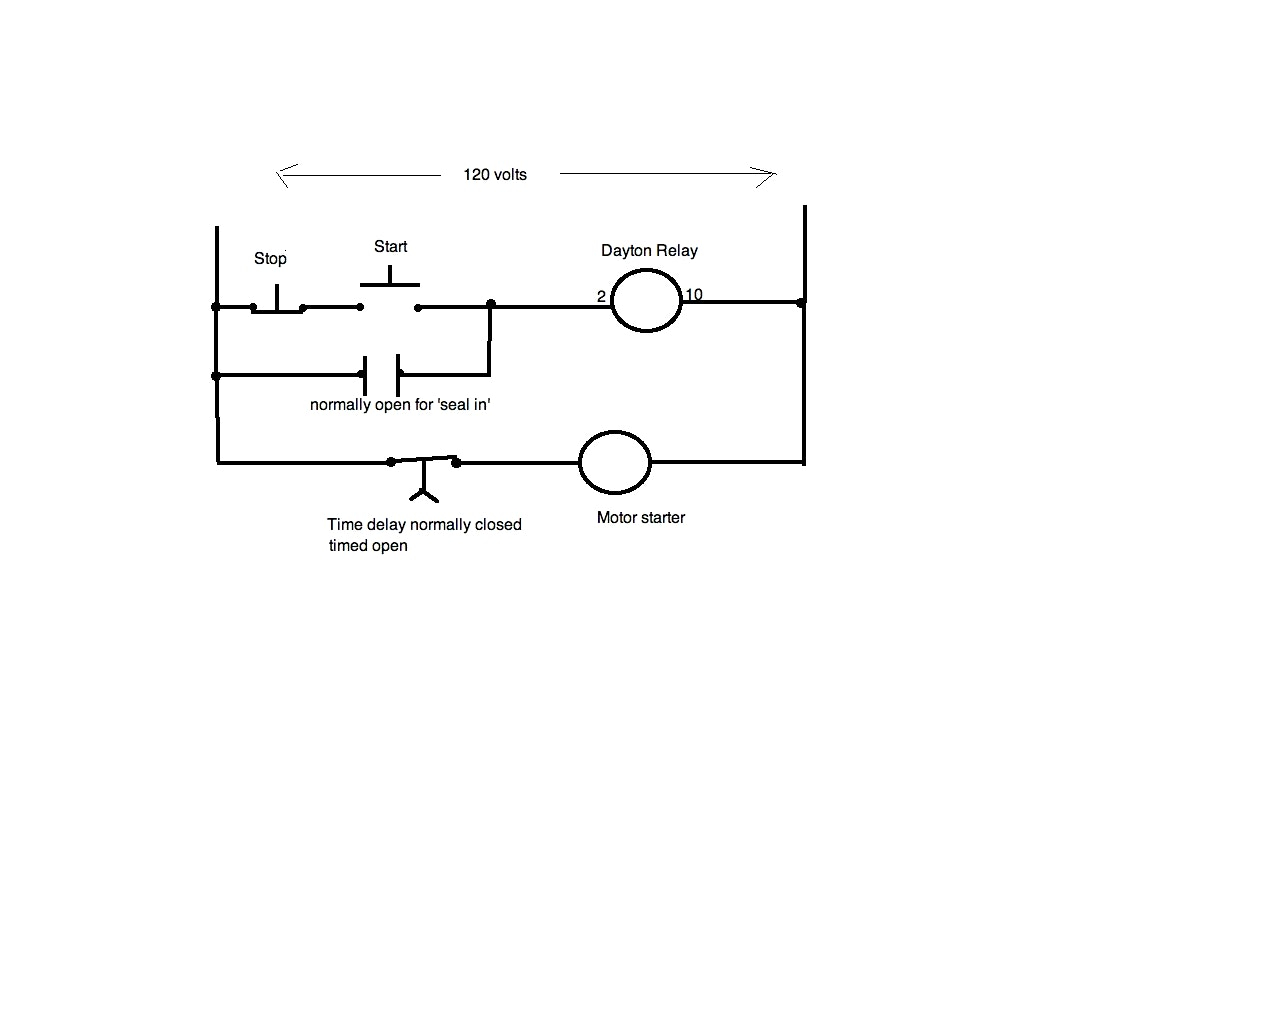 hight resolution of dayton time delay relay wiring diagram collection foxy wiring diagram for time delay relay the